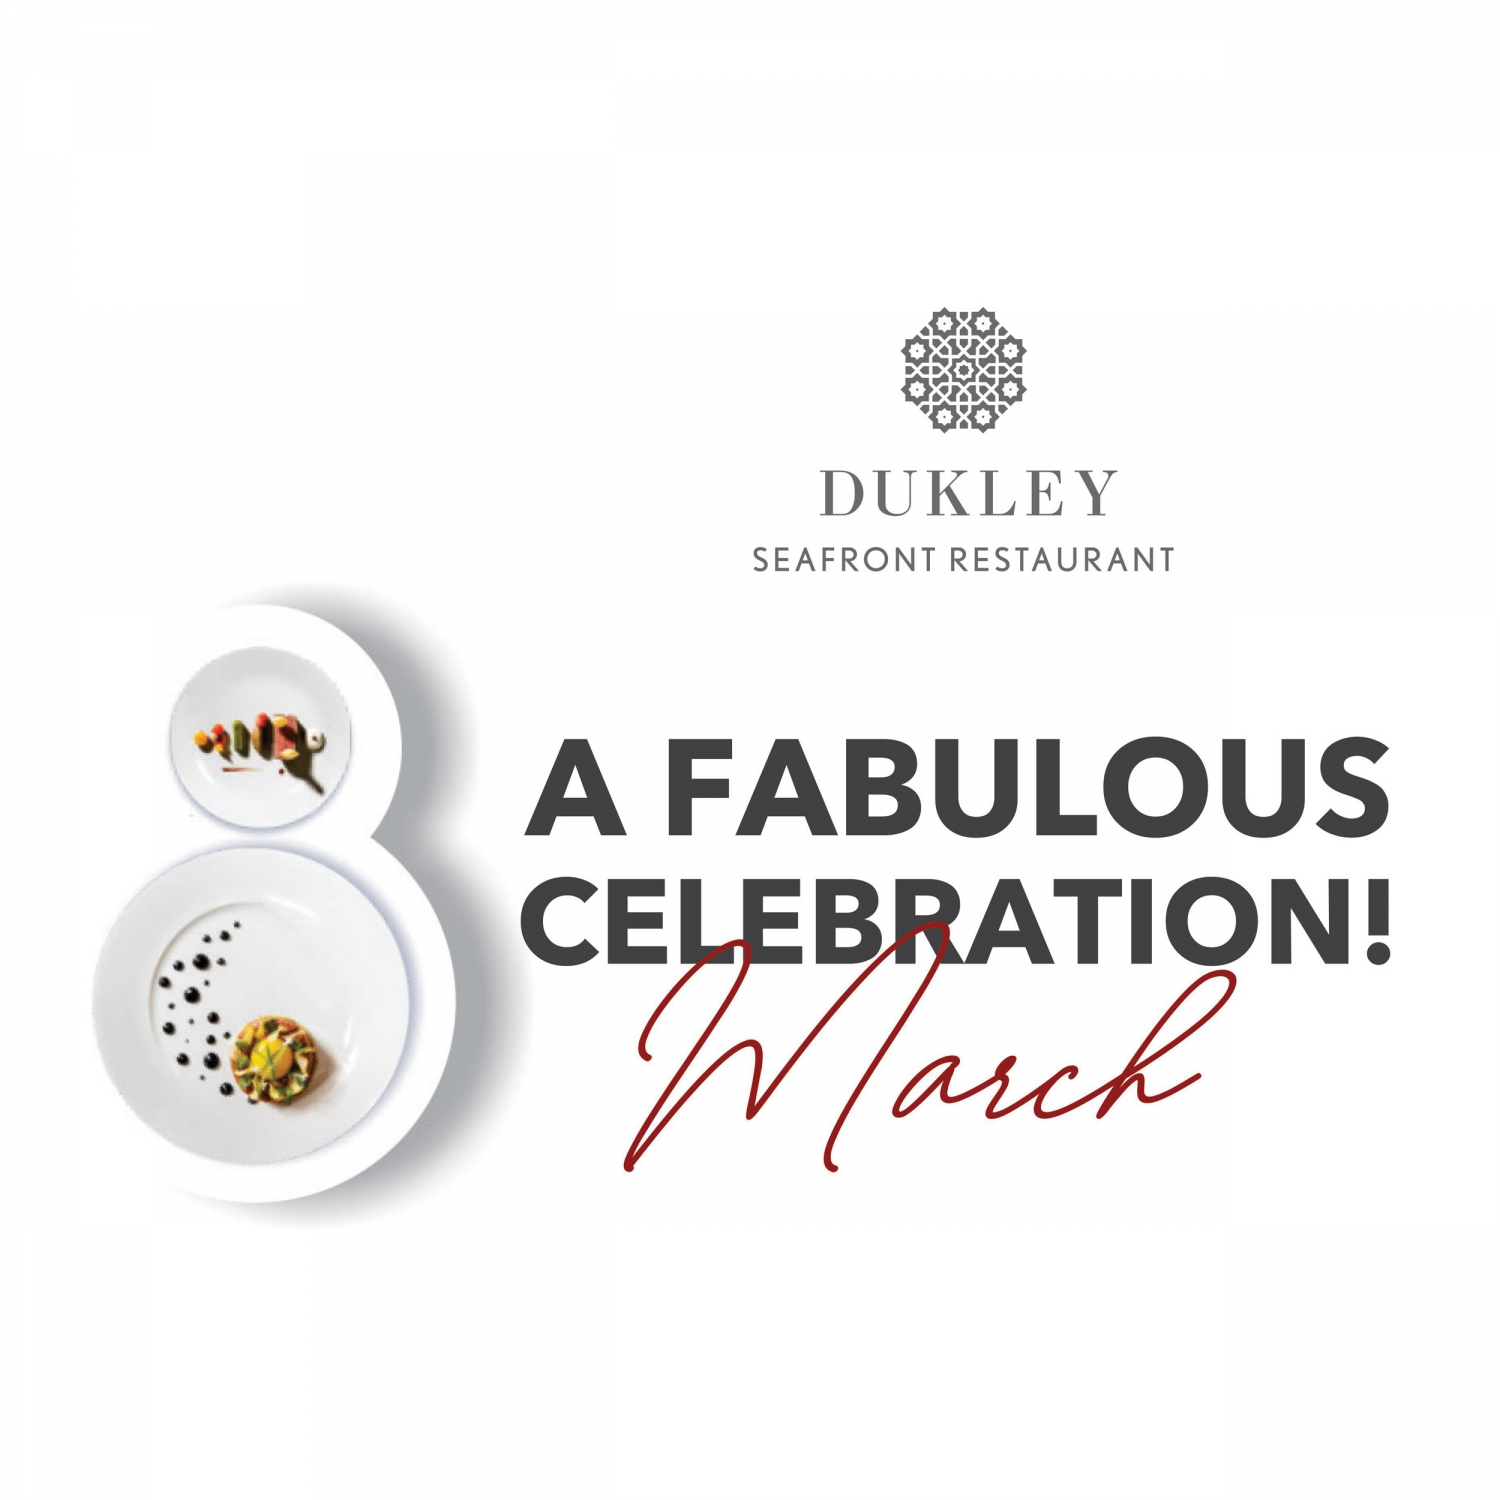 Women's Day at Dukley Seafront Restaurant